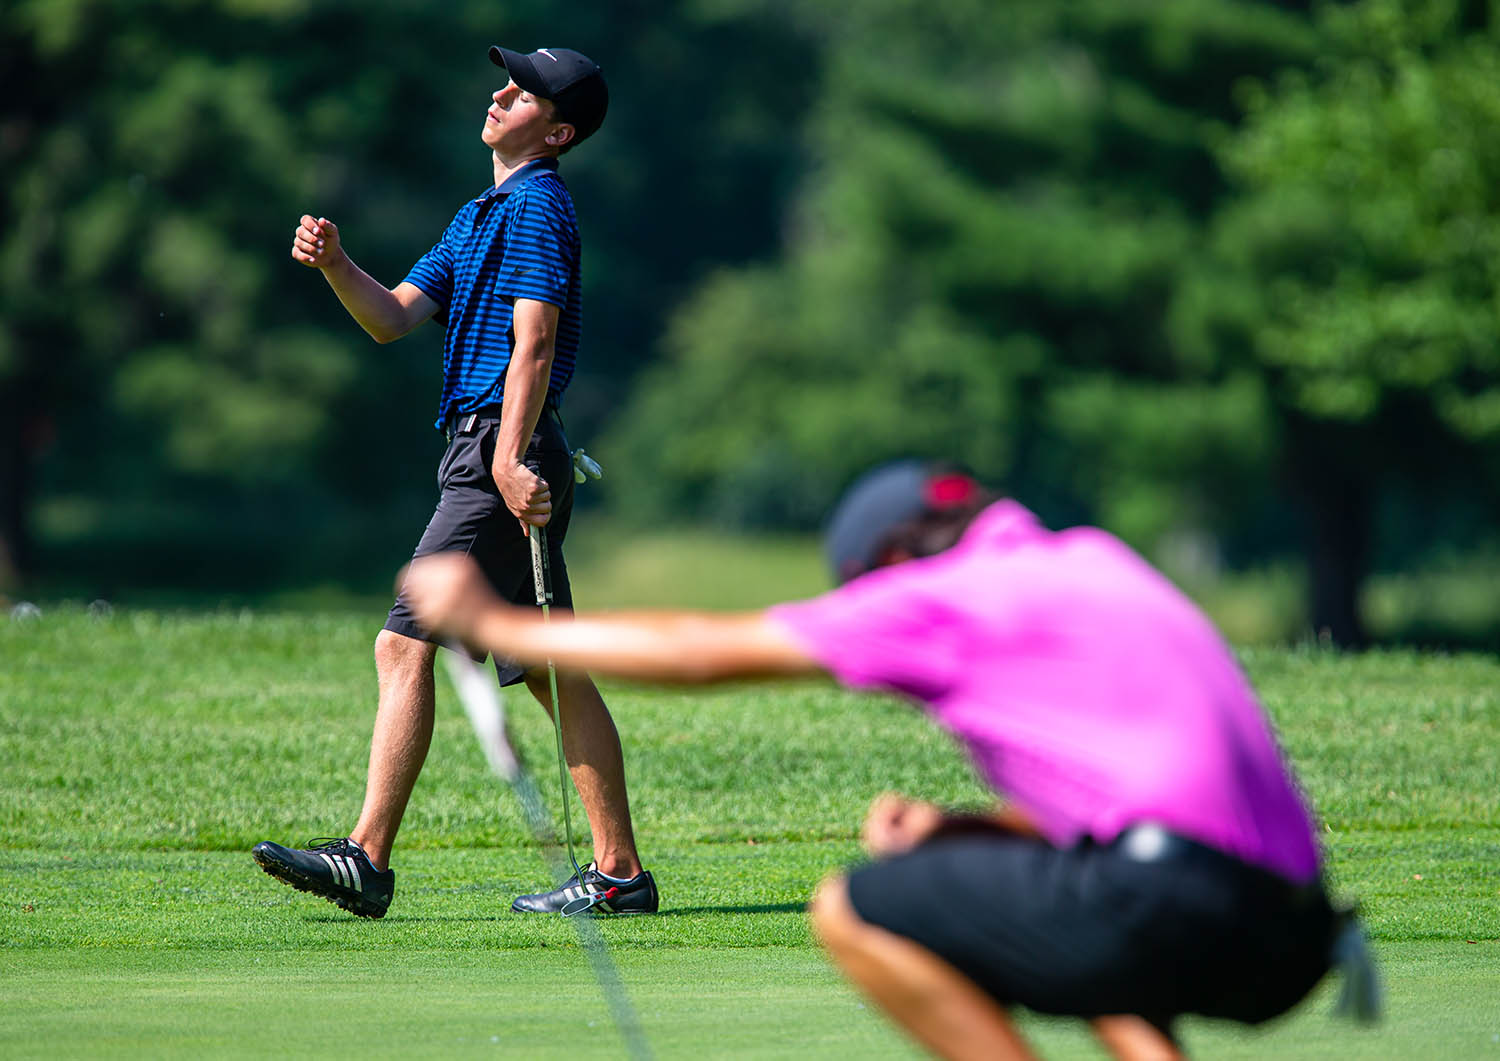 Tobin Nell reacts after missing a putt on the No. 9 hole on the opening day of the Drysdale Golf Tournament at Lincoln Greens Golf Course, Monday, July 8, 2019, in Springfield, Ill. [Justin L. Fowler/The State Journal-Register]